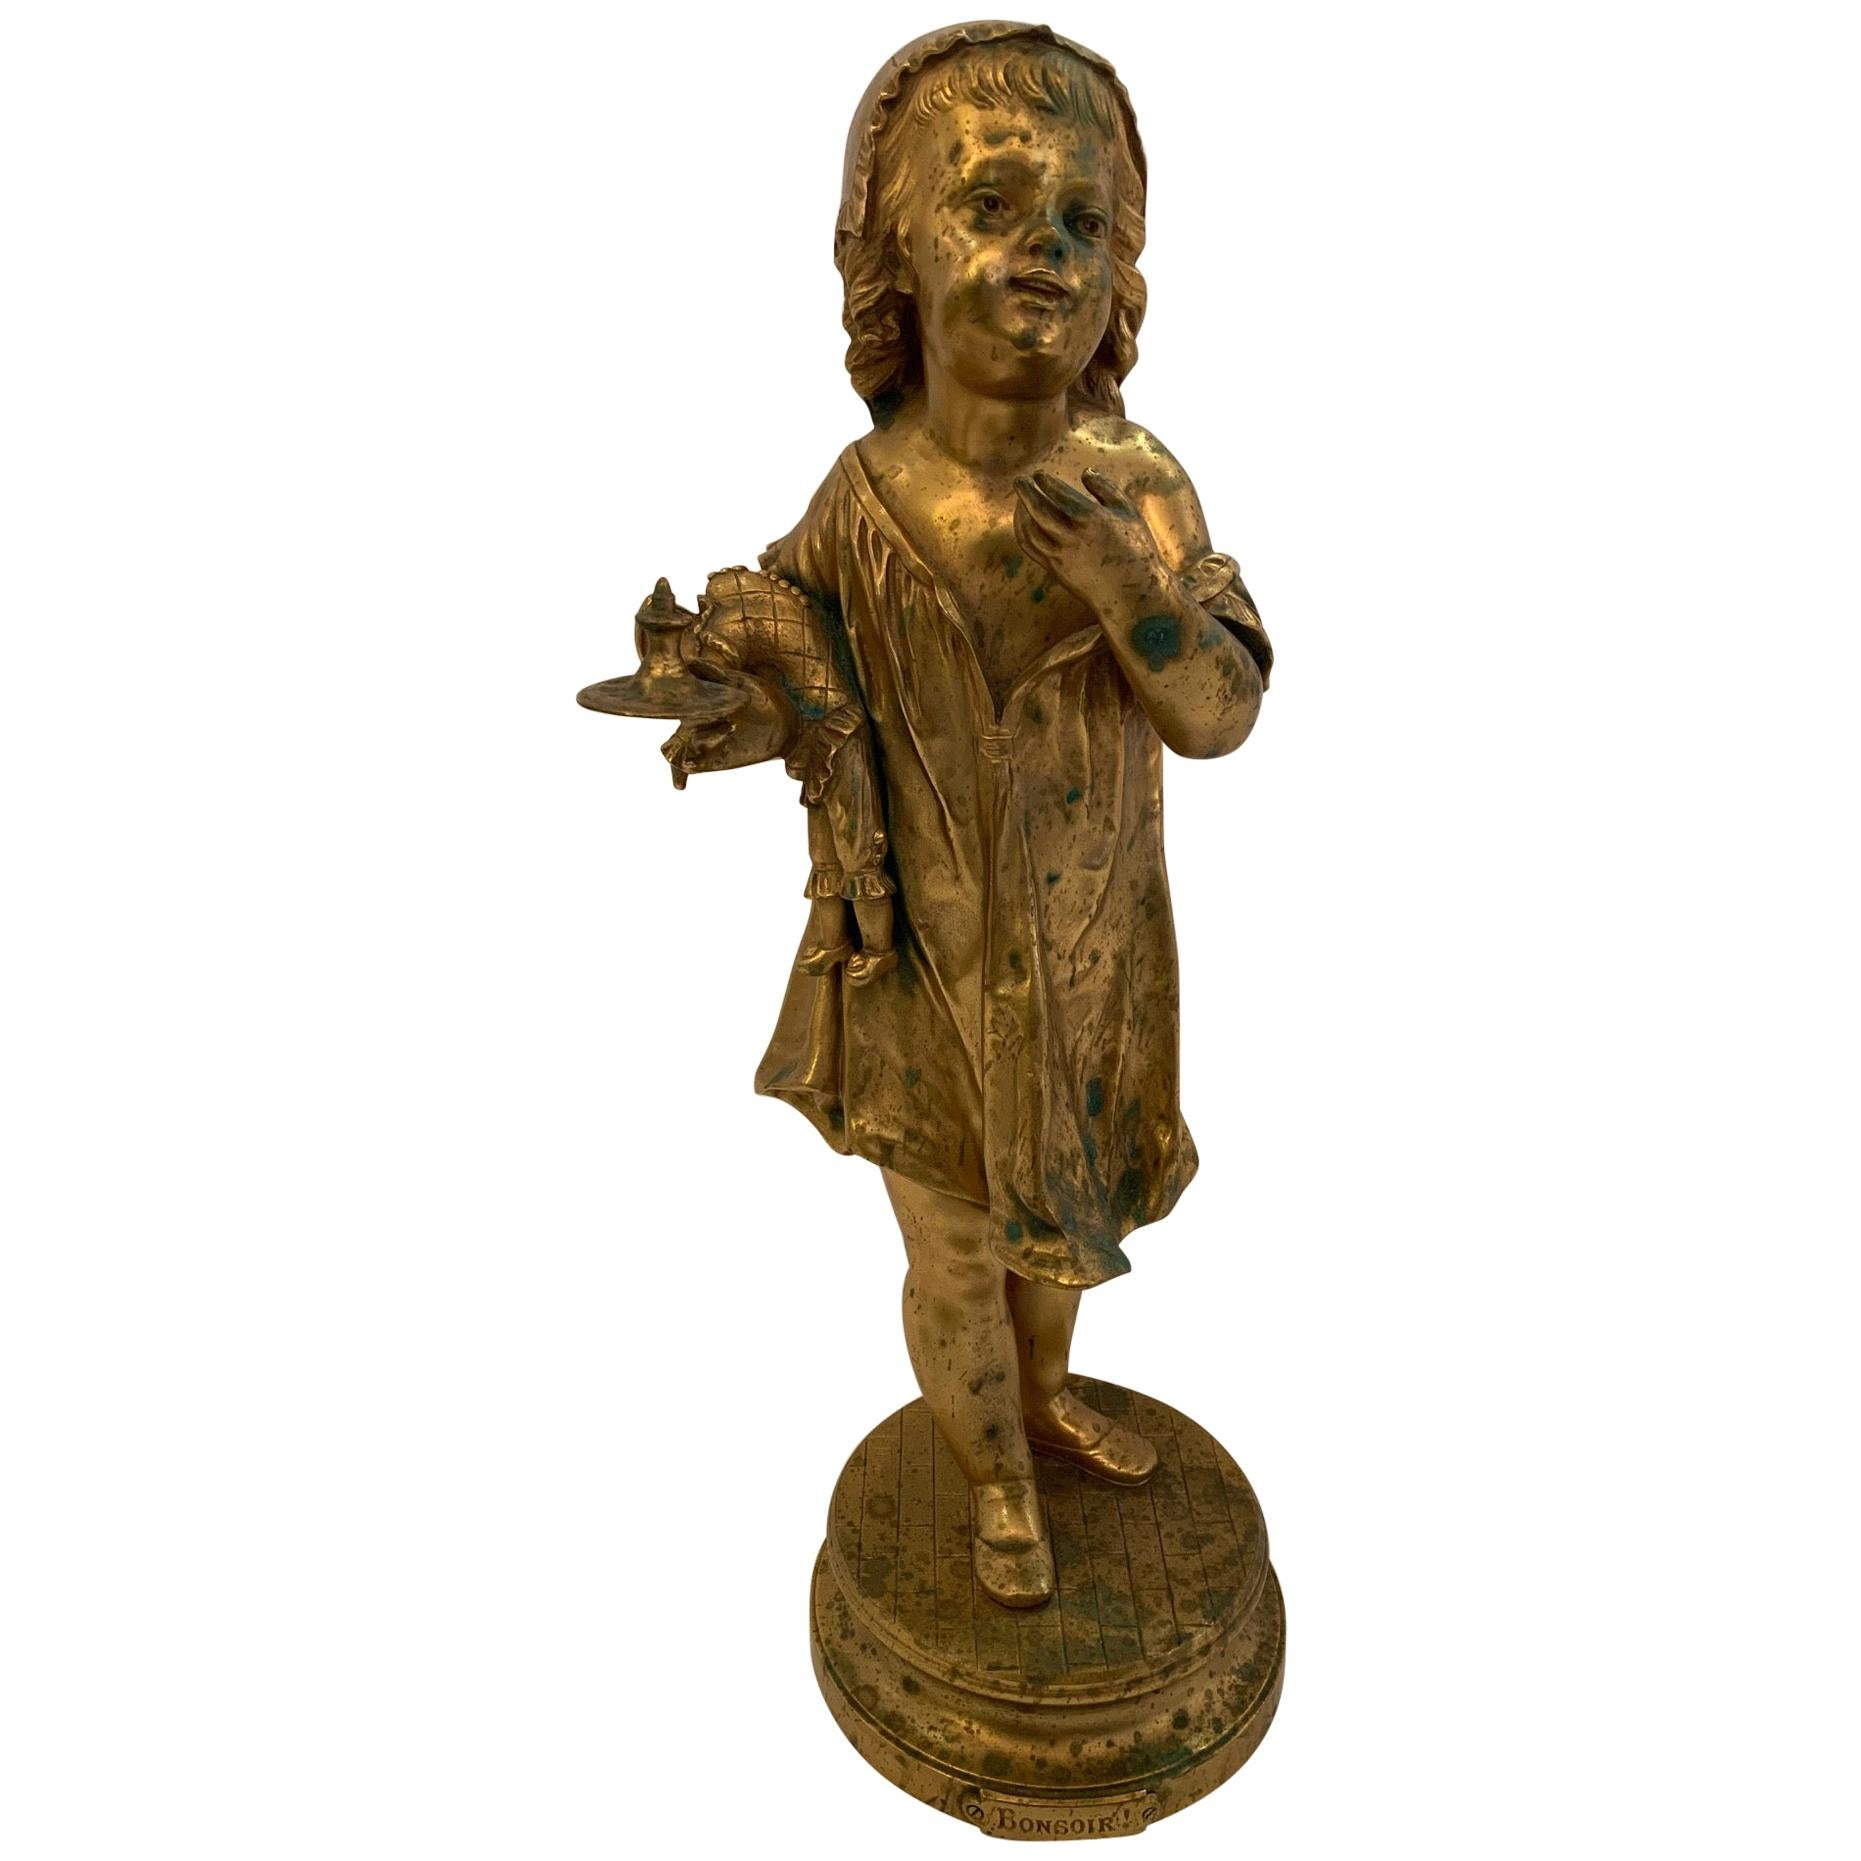 French Antique Figurative Sculpture of Girl by Charles Masse